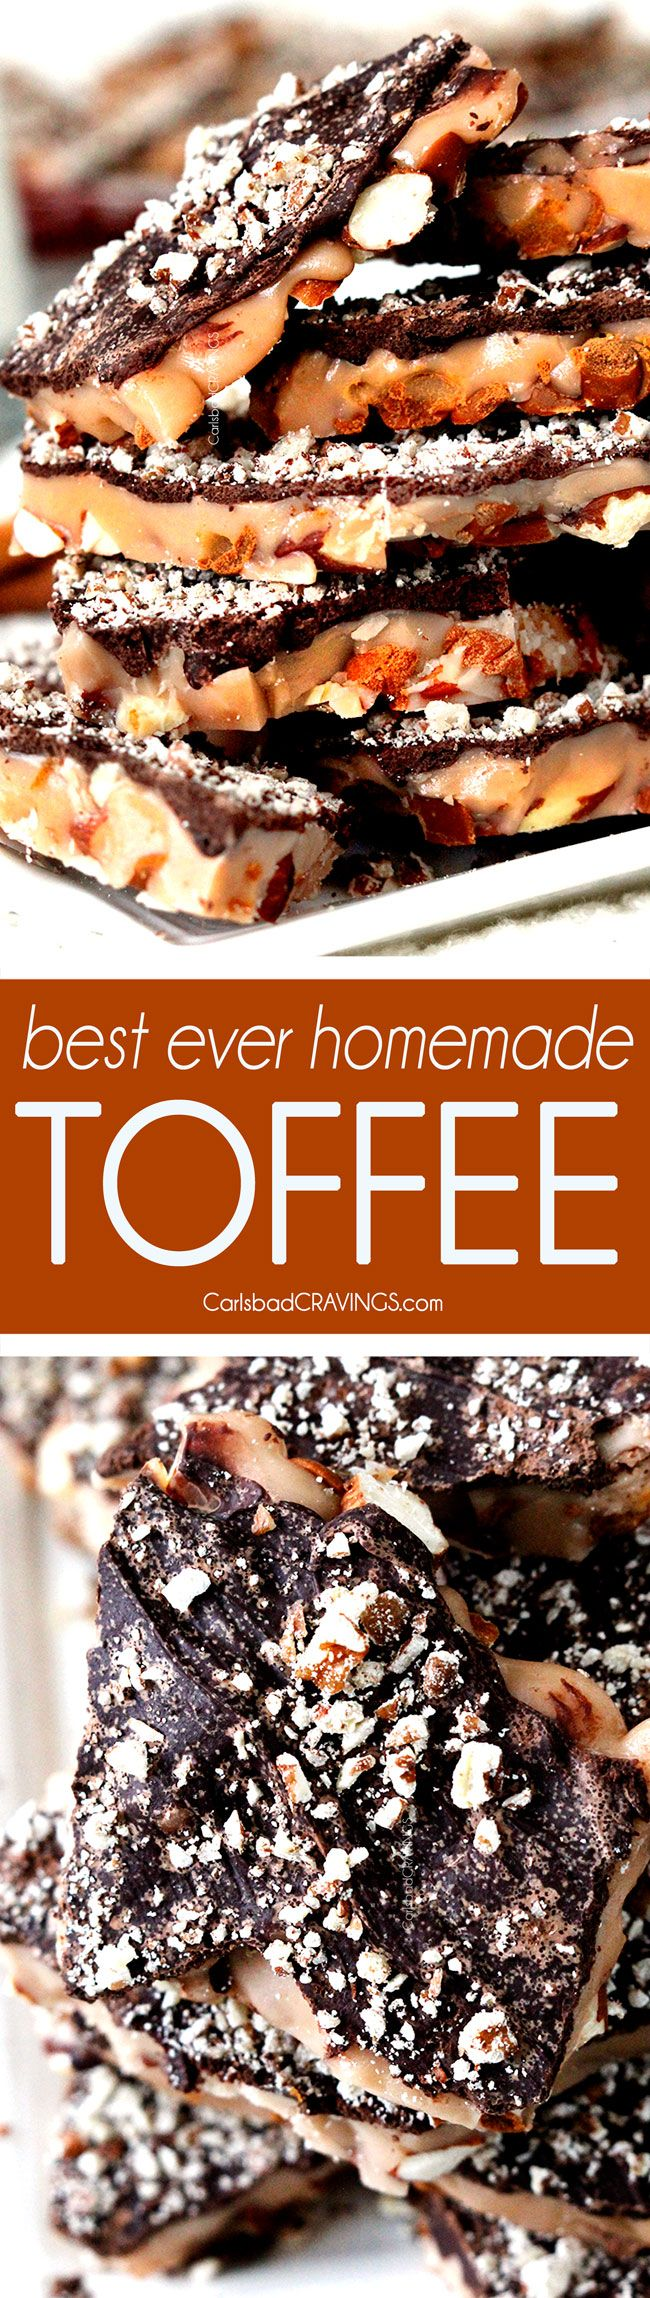 My mother-in-laws famous Homemade Toffee that everyone BEGS for the recipe! This will make a toffee addict out of you! This recipe is reliable, ADDICTING and the easiest and quickest dessert to whip up for gift giving and crowds!